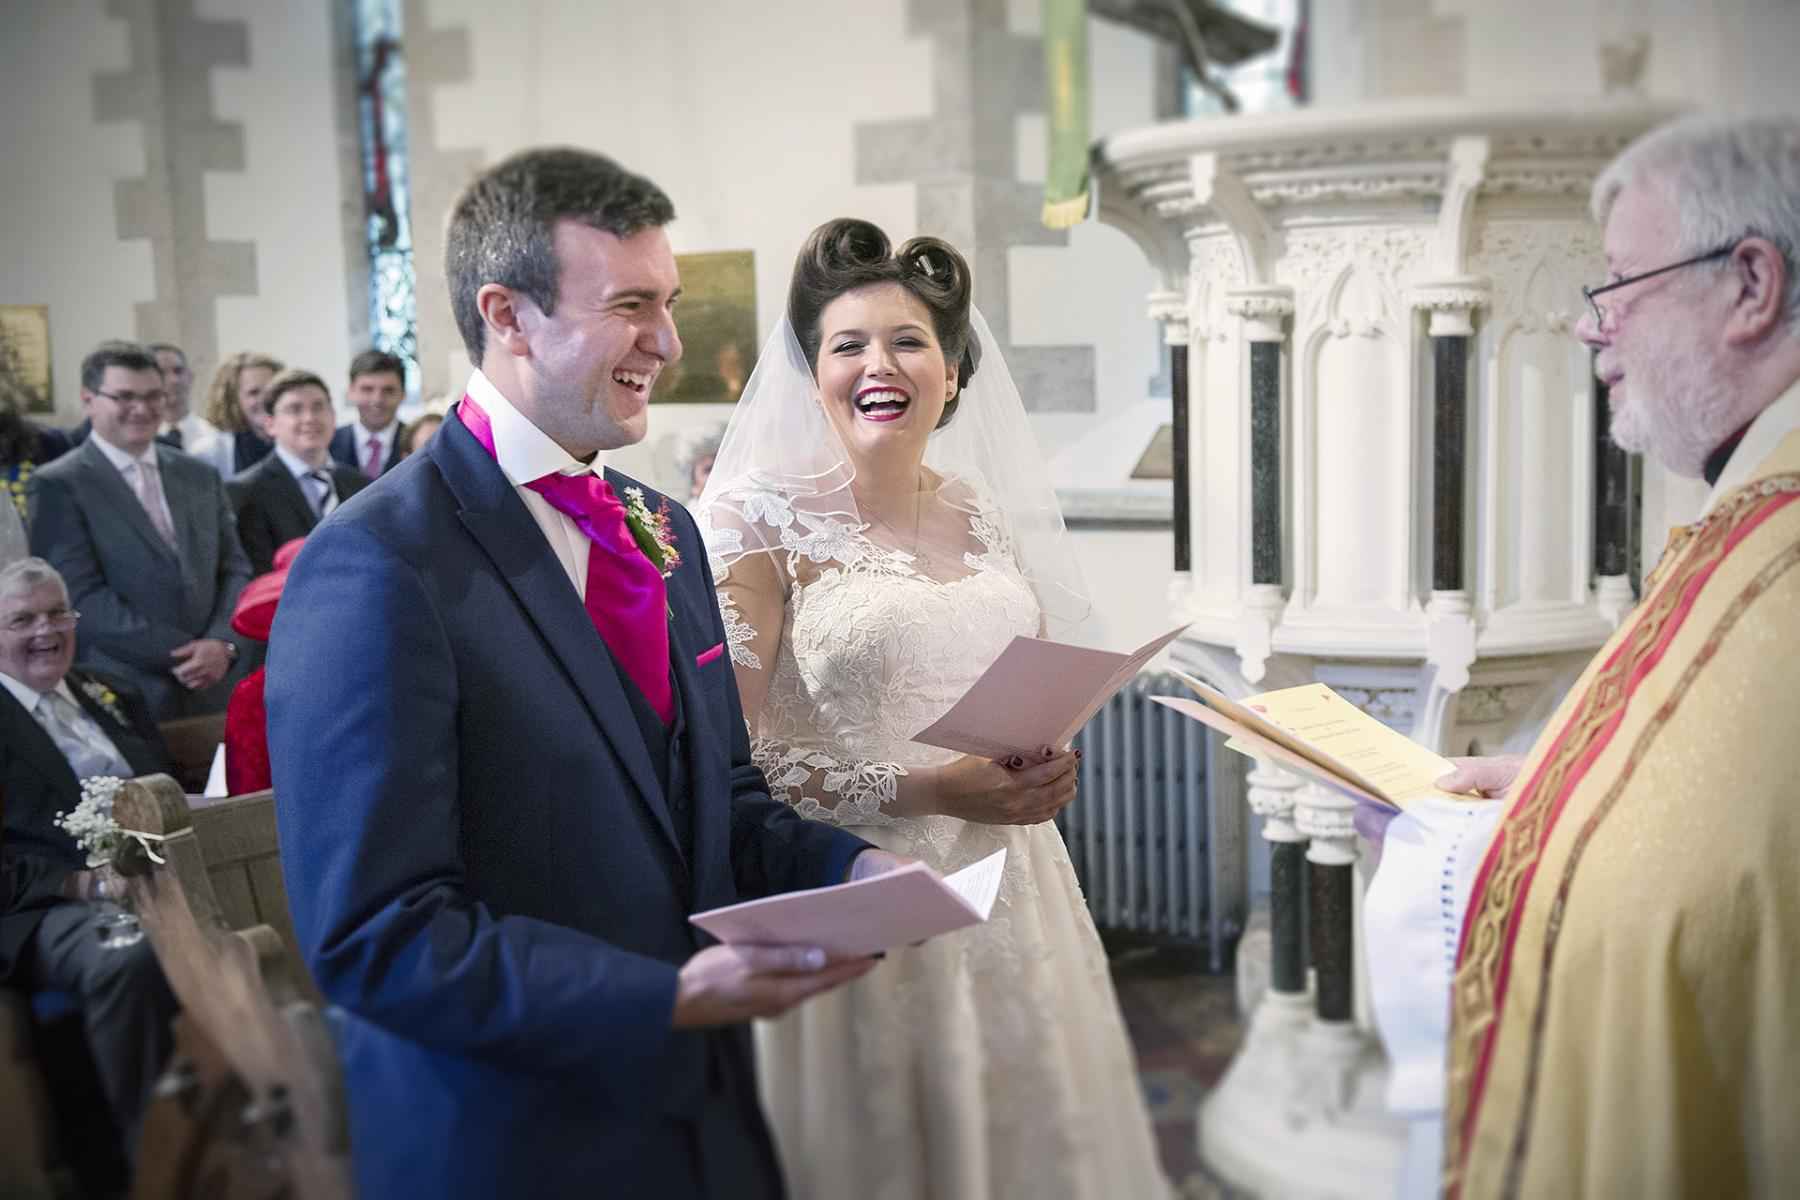 wedding-laughing-bride-groom-reportage-wedding-photography-south-wales-St-teilo's